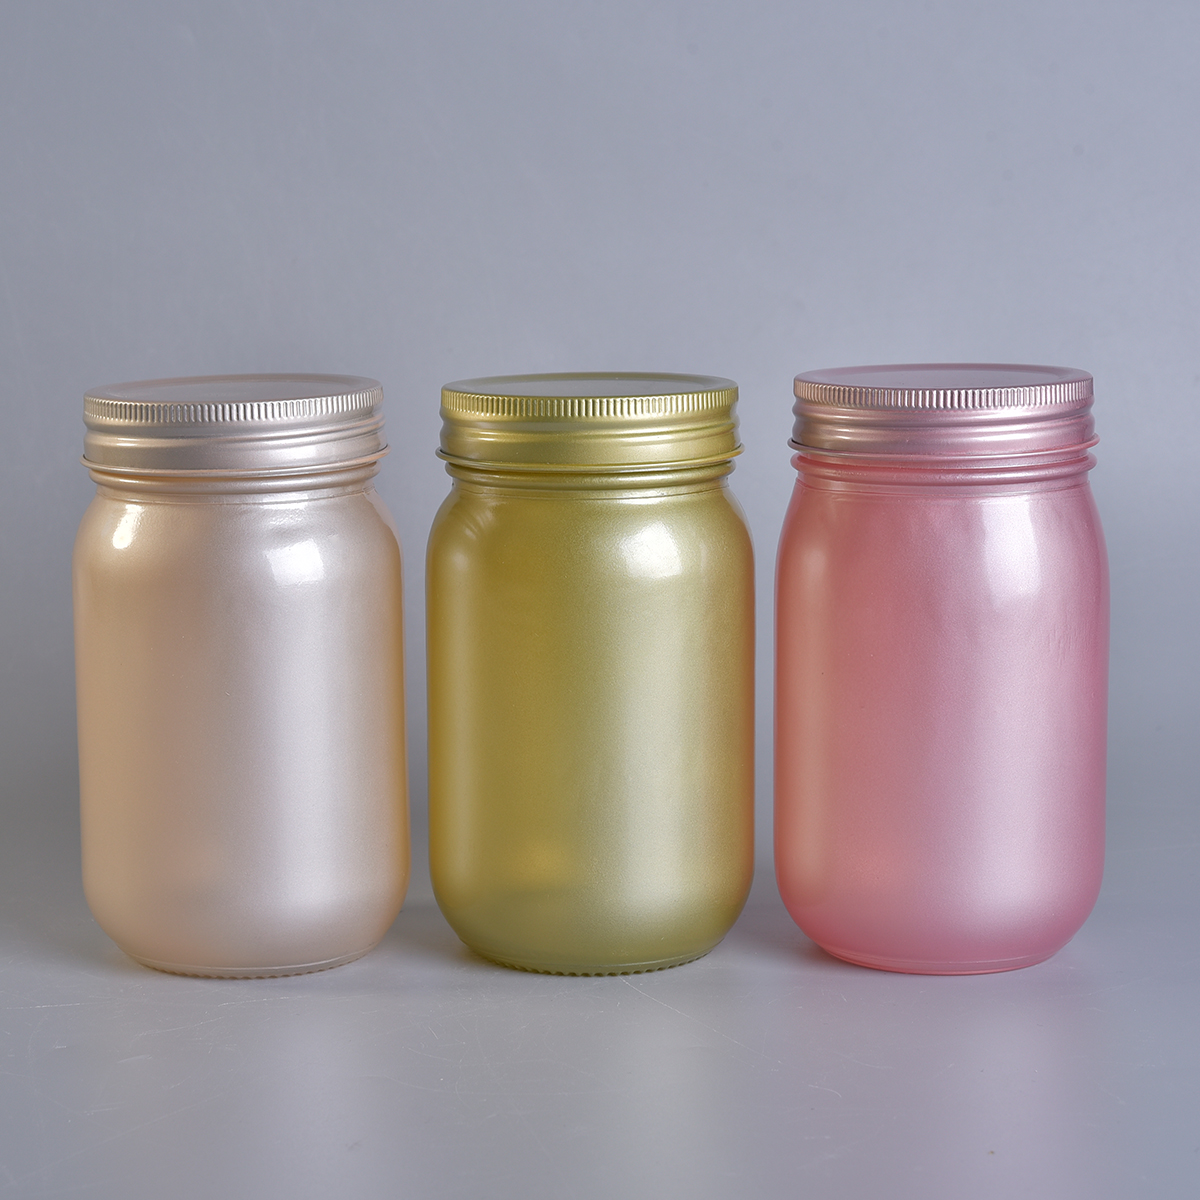 Beautiful Glass Candle Jar With Lids For Decoration